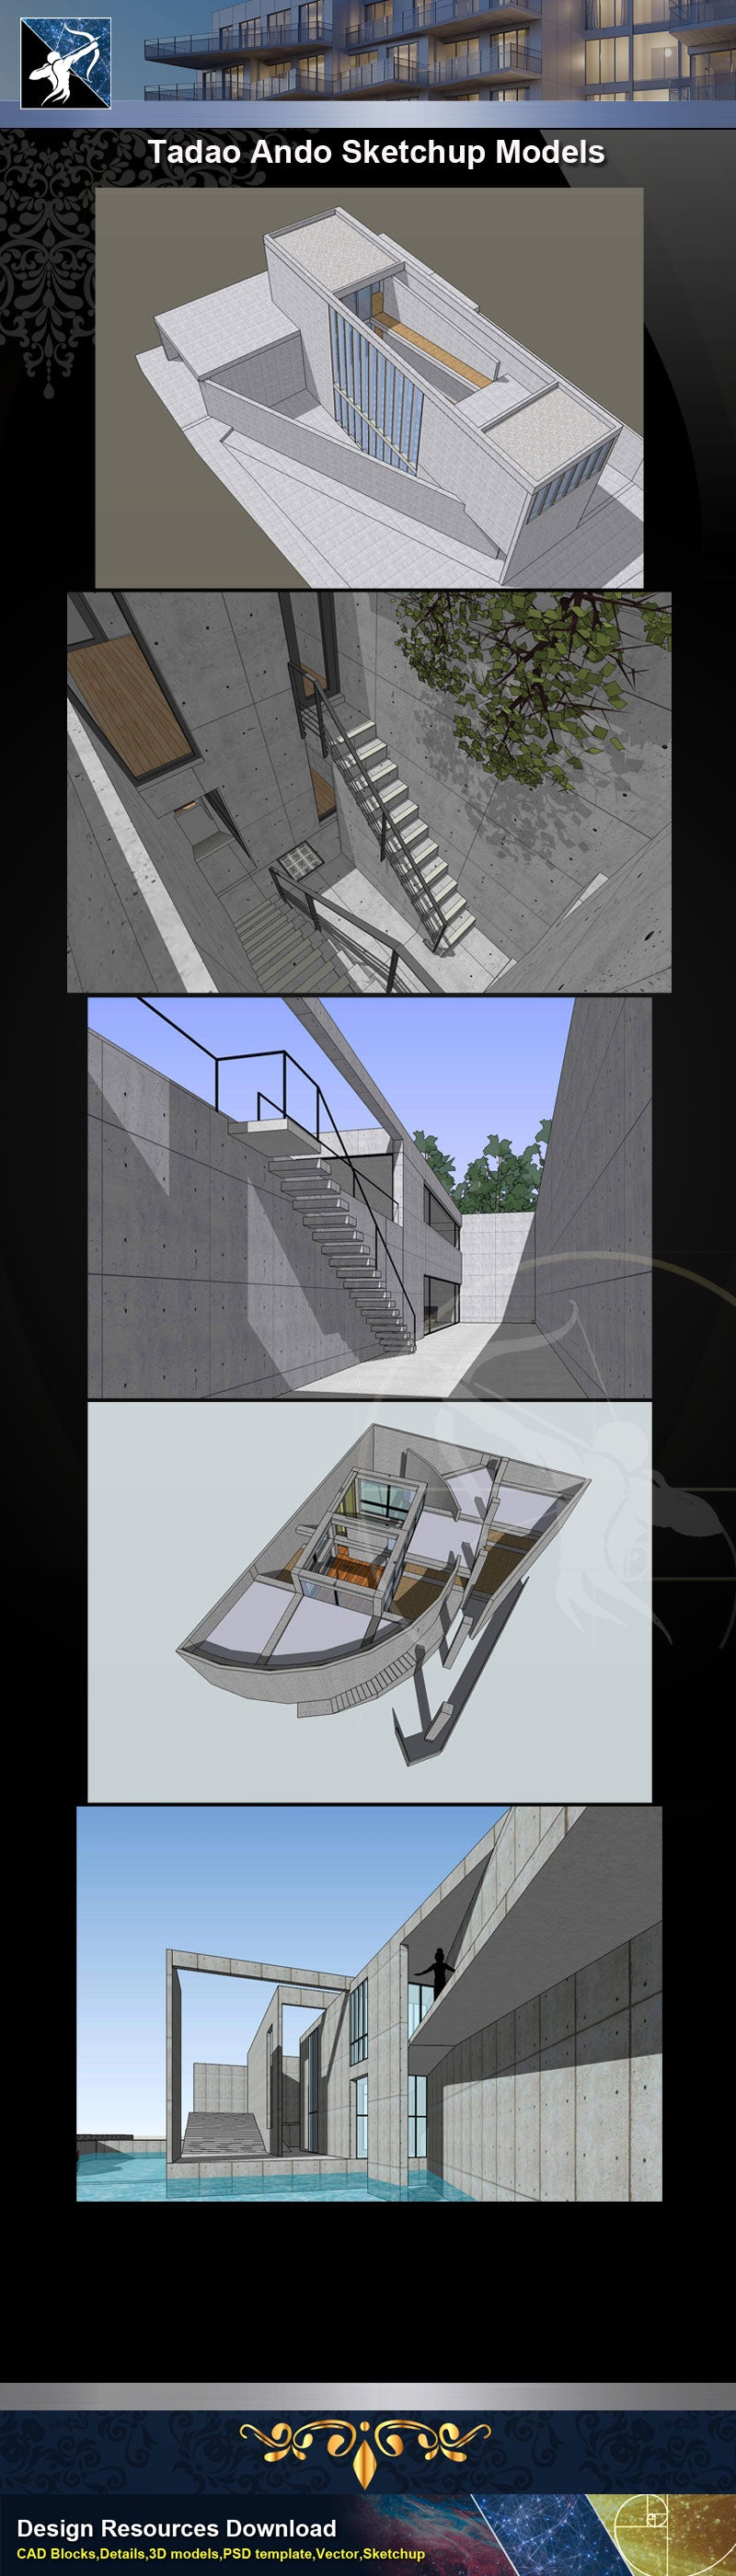 ★★Famous Architecture -Tadao Ando Sketchup 3D Models